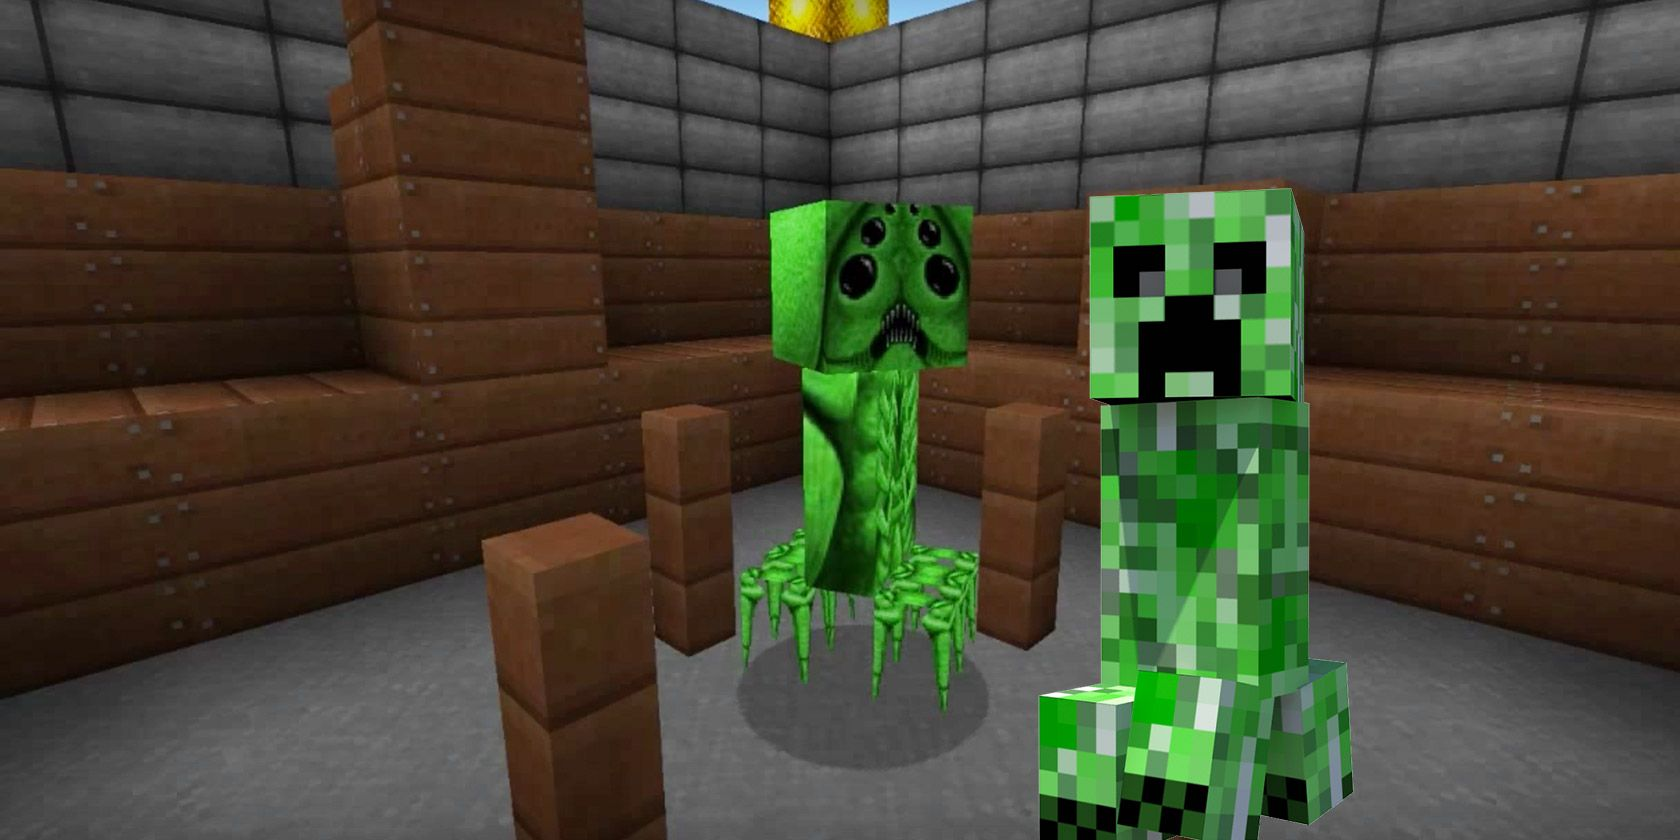 How to Create and Install Custom Minecraft Textures - Download How to Create and Install Custom Minecraft Textures for FREE - Free Cheats for Games